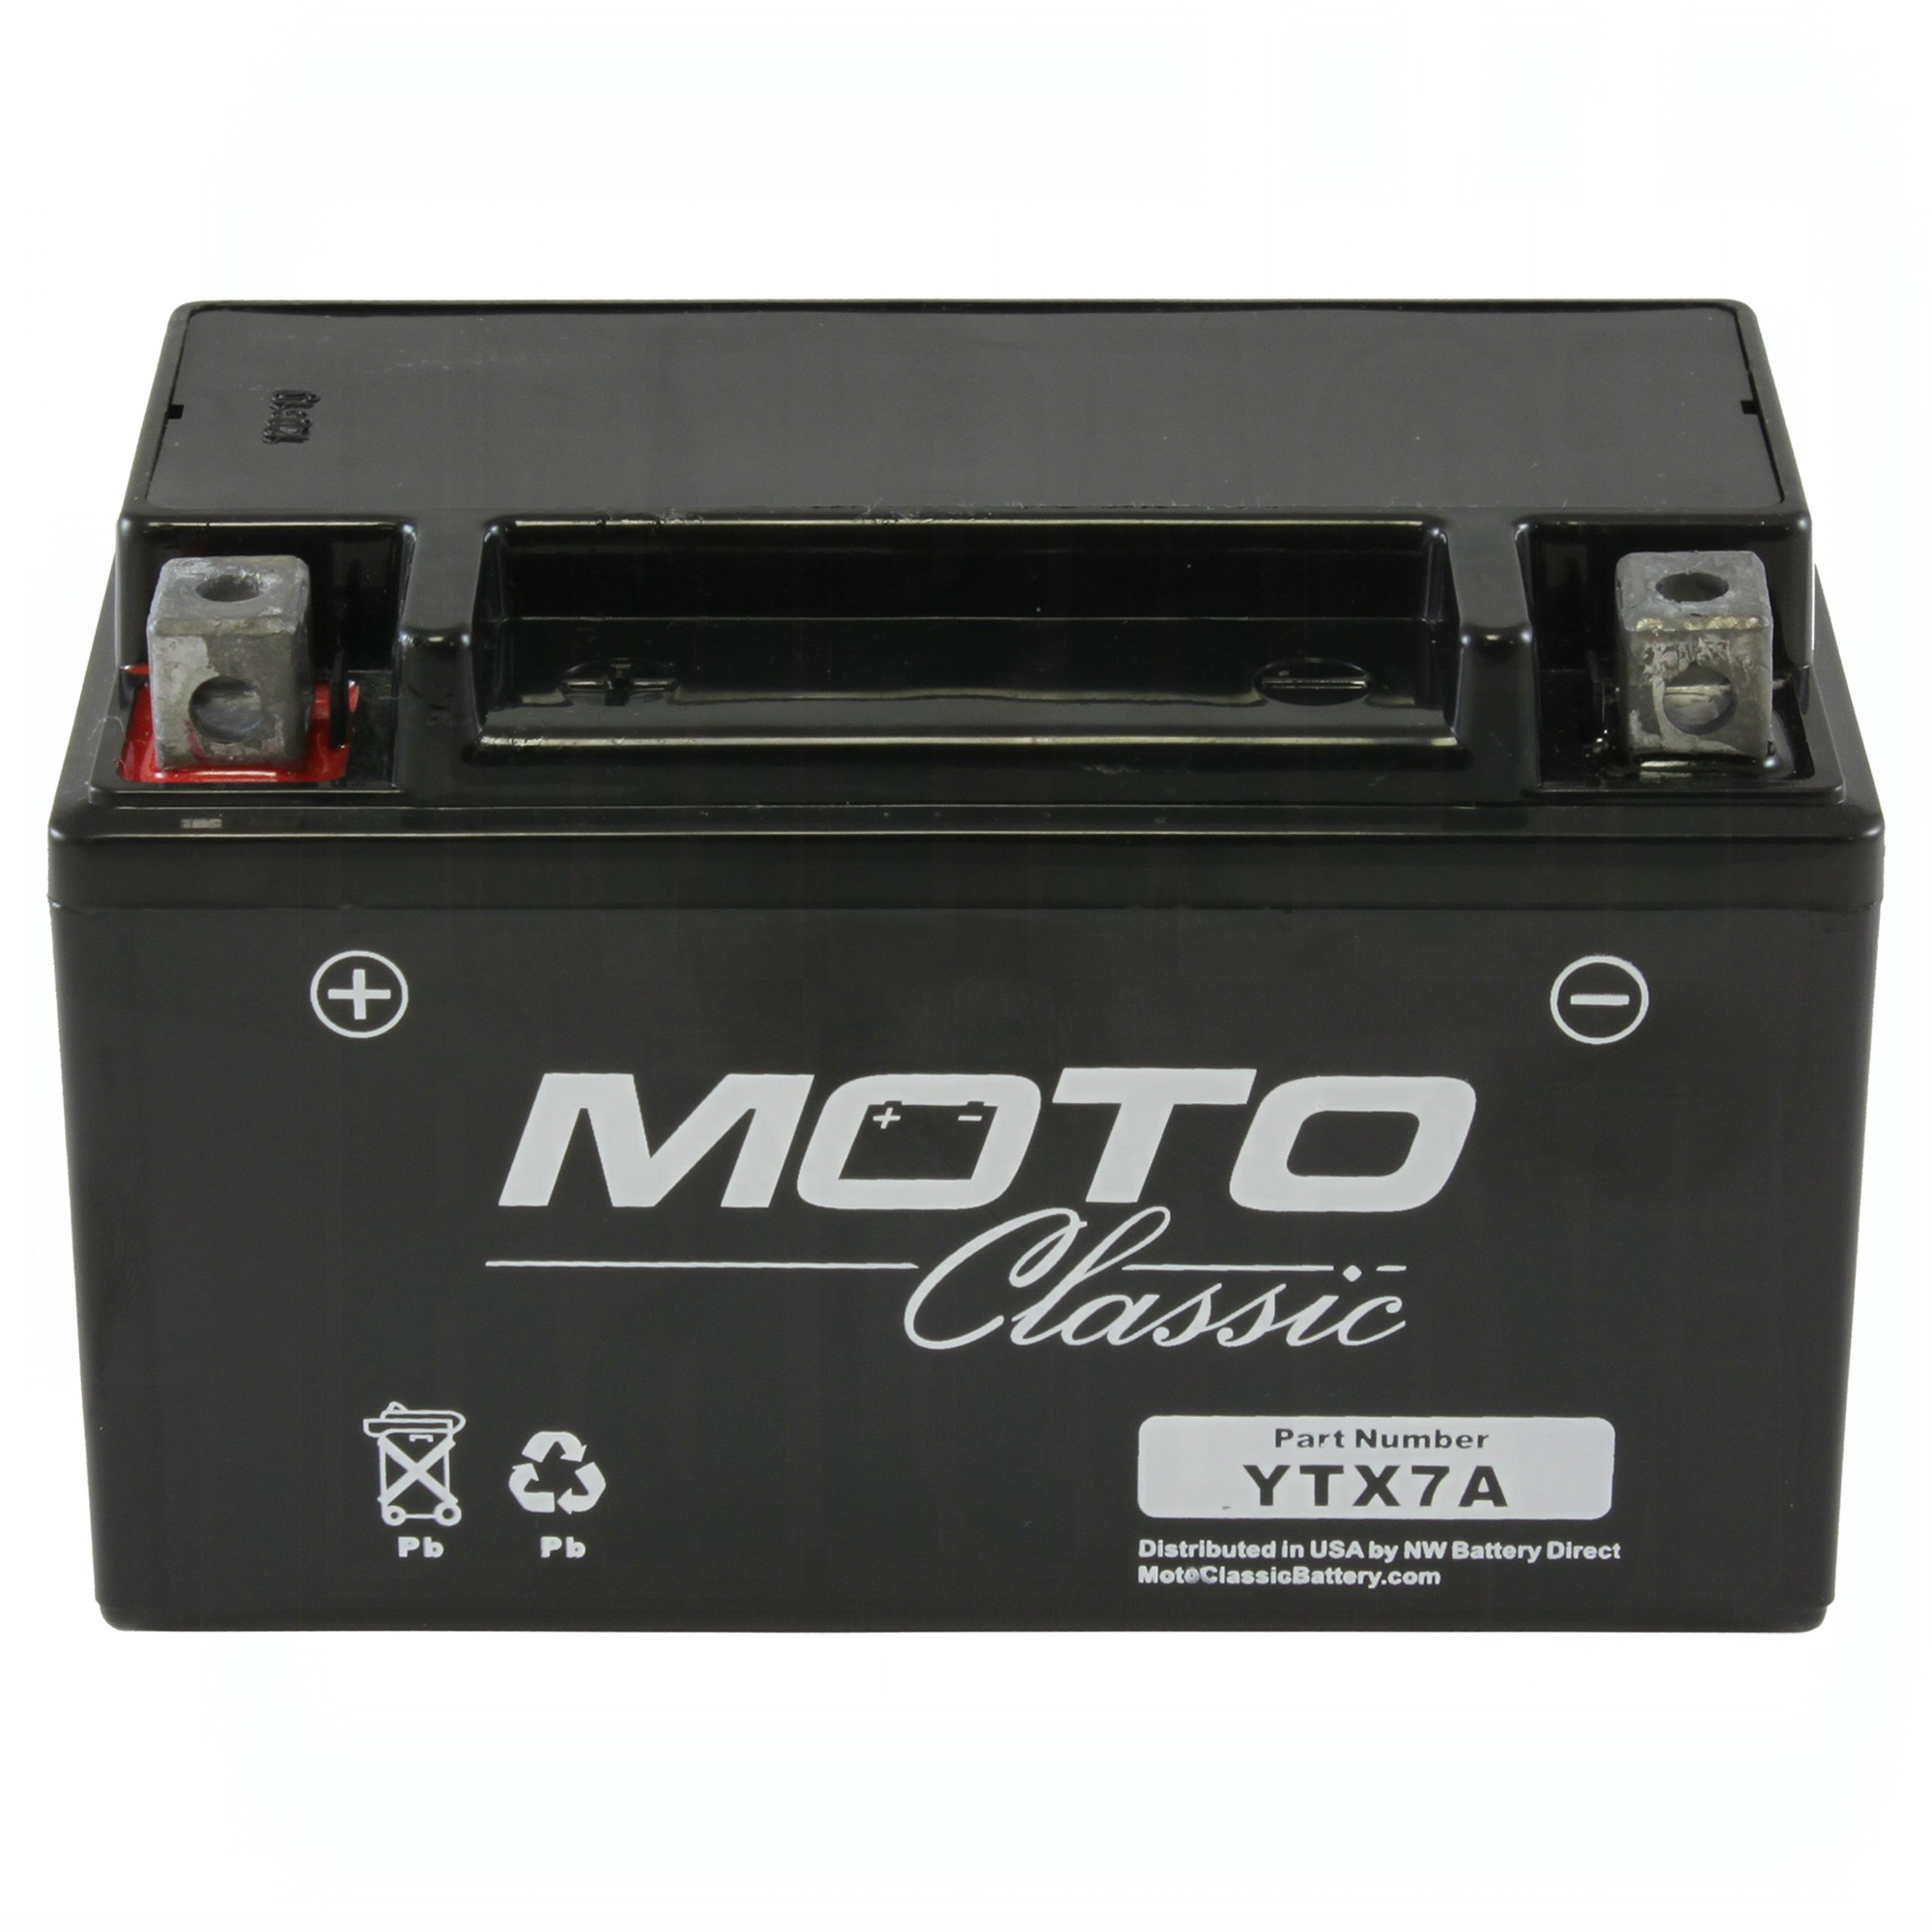 ytx7a bs battery moto classic scooter batteries gtx7a bs upgrade. Black Bedroom Furniture Sets. Home Design Ideas